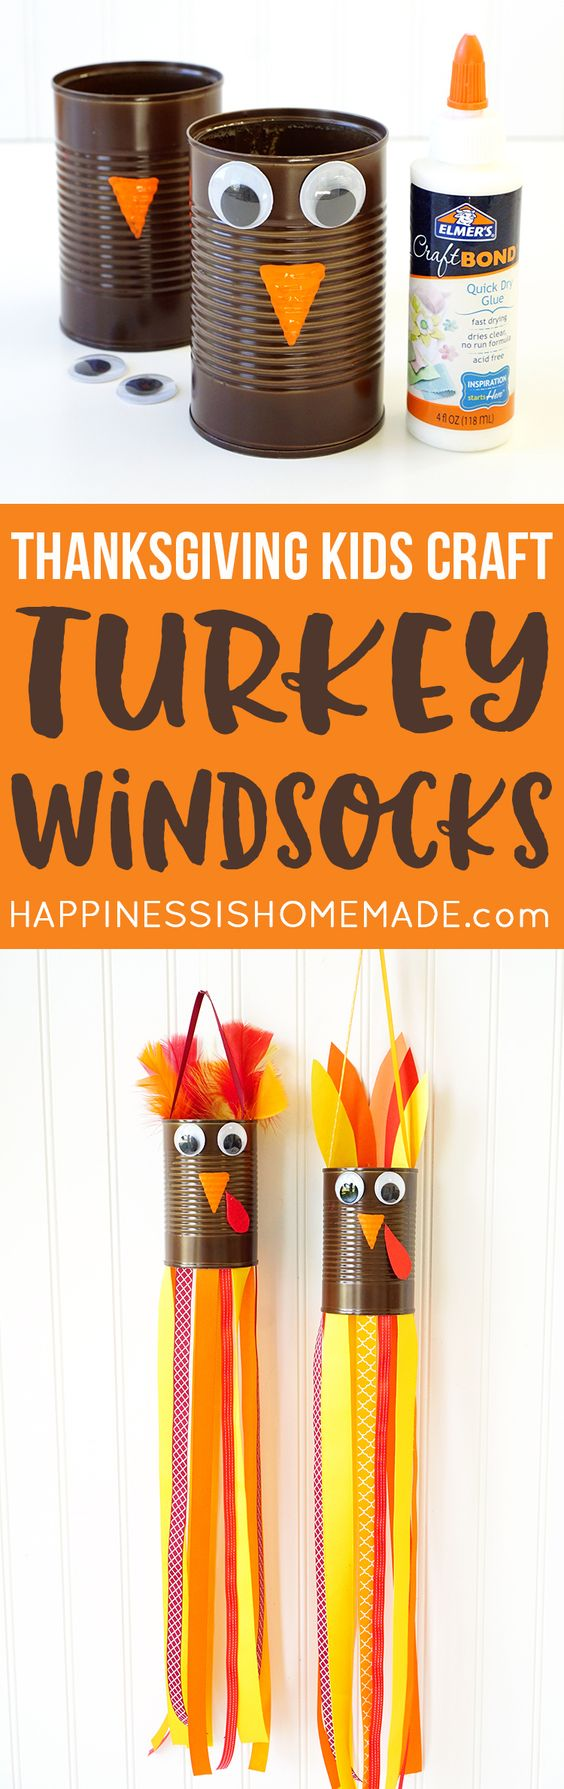 Turkey Windsocks.